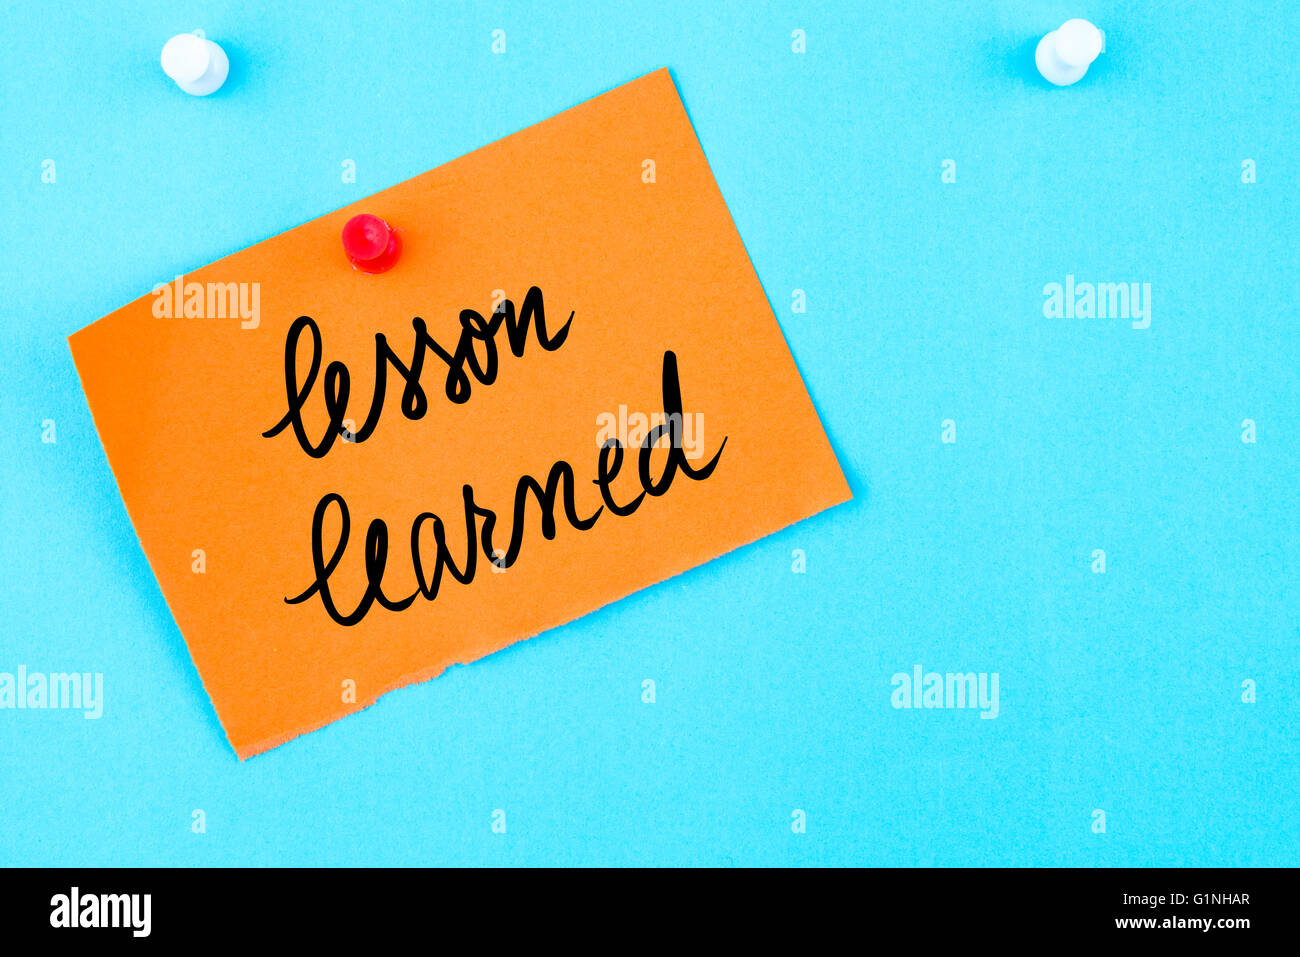 Lesson Learned written on orange paper note pinned on cork board with white thumbtack, copy space available - Stock Image